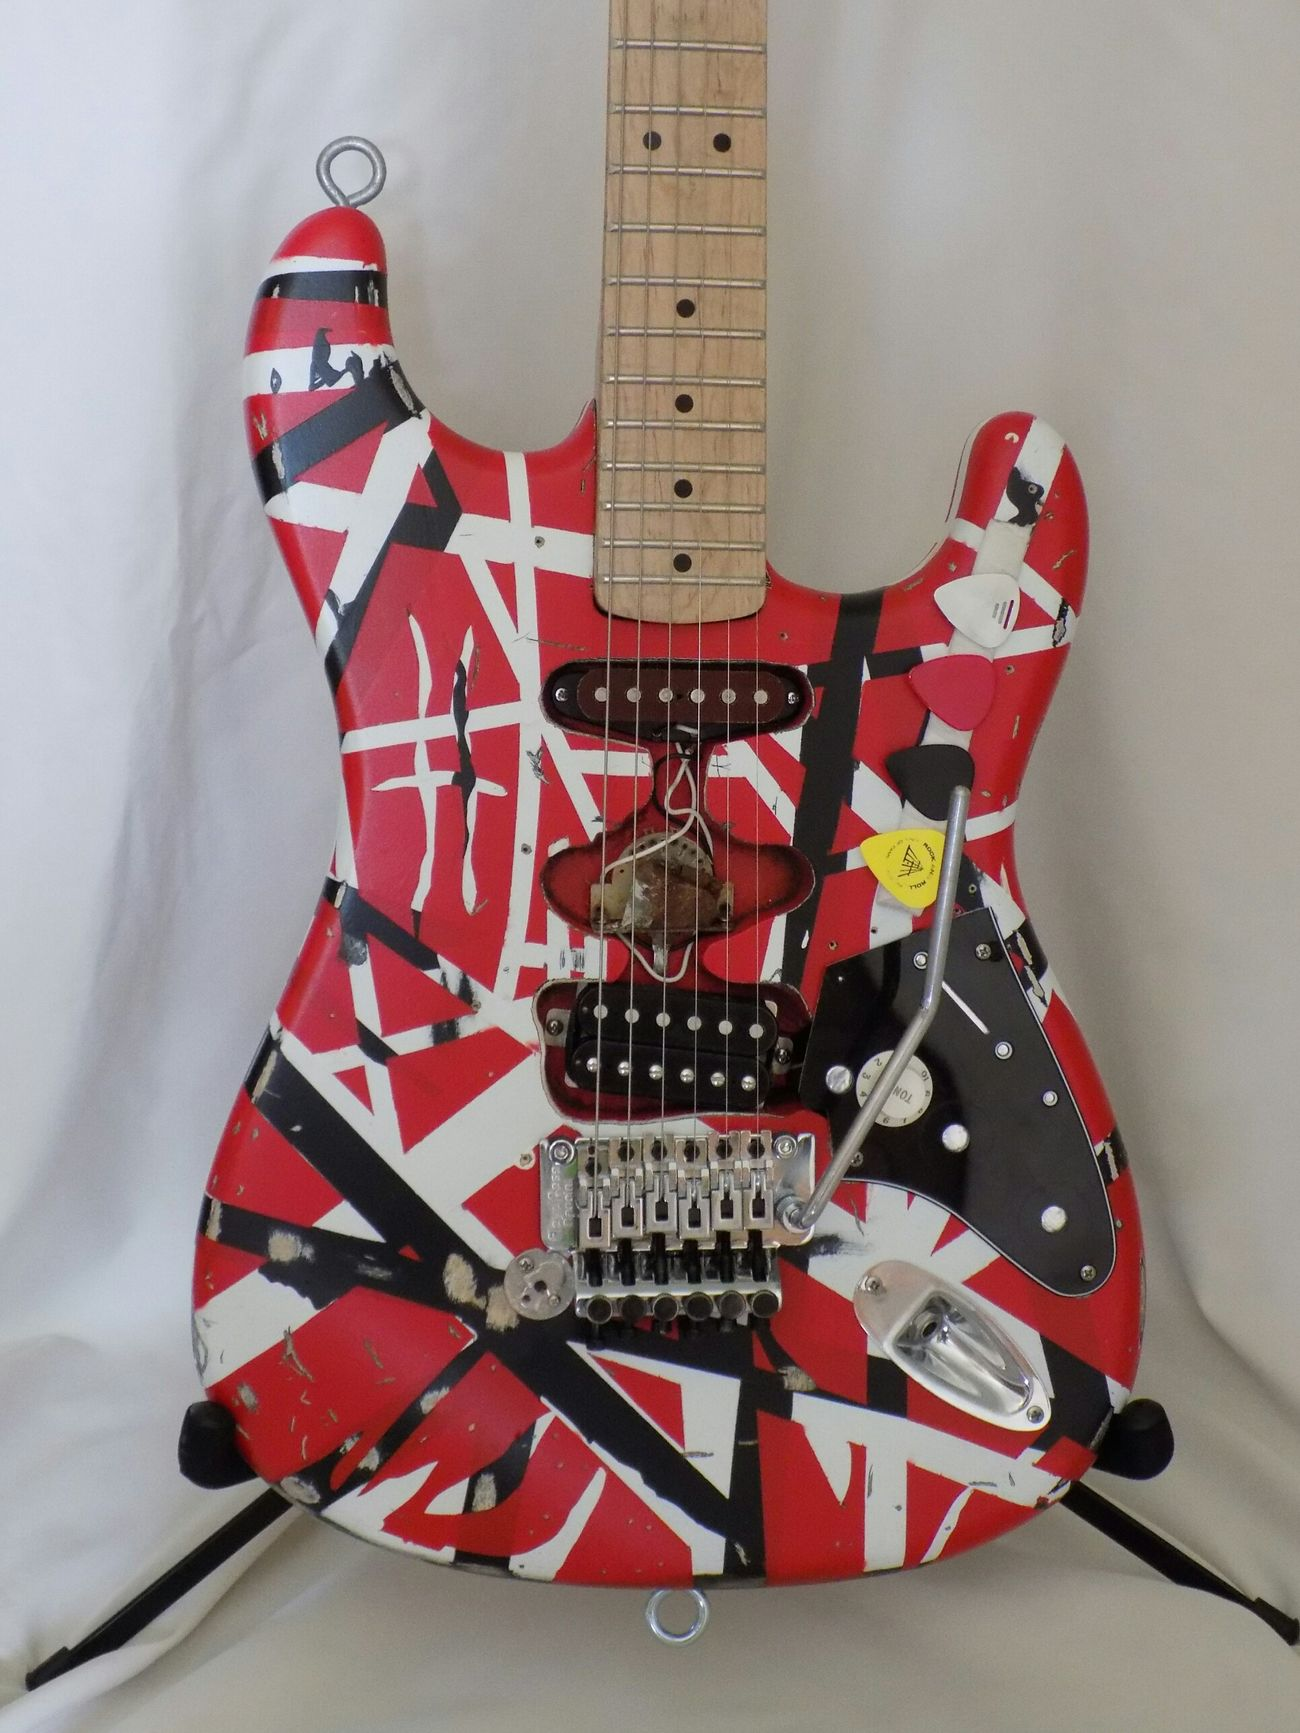 Replica I made of Eddie Van Halen's Frankenstrst guitar 1982 Eddie Van Halen Van Halen Rock'n'Roll Electric Guitar Homemade Craftsmanship  Music Musician Hardwork